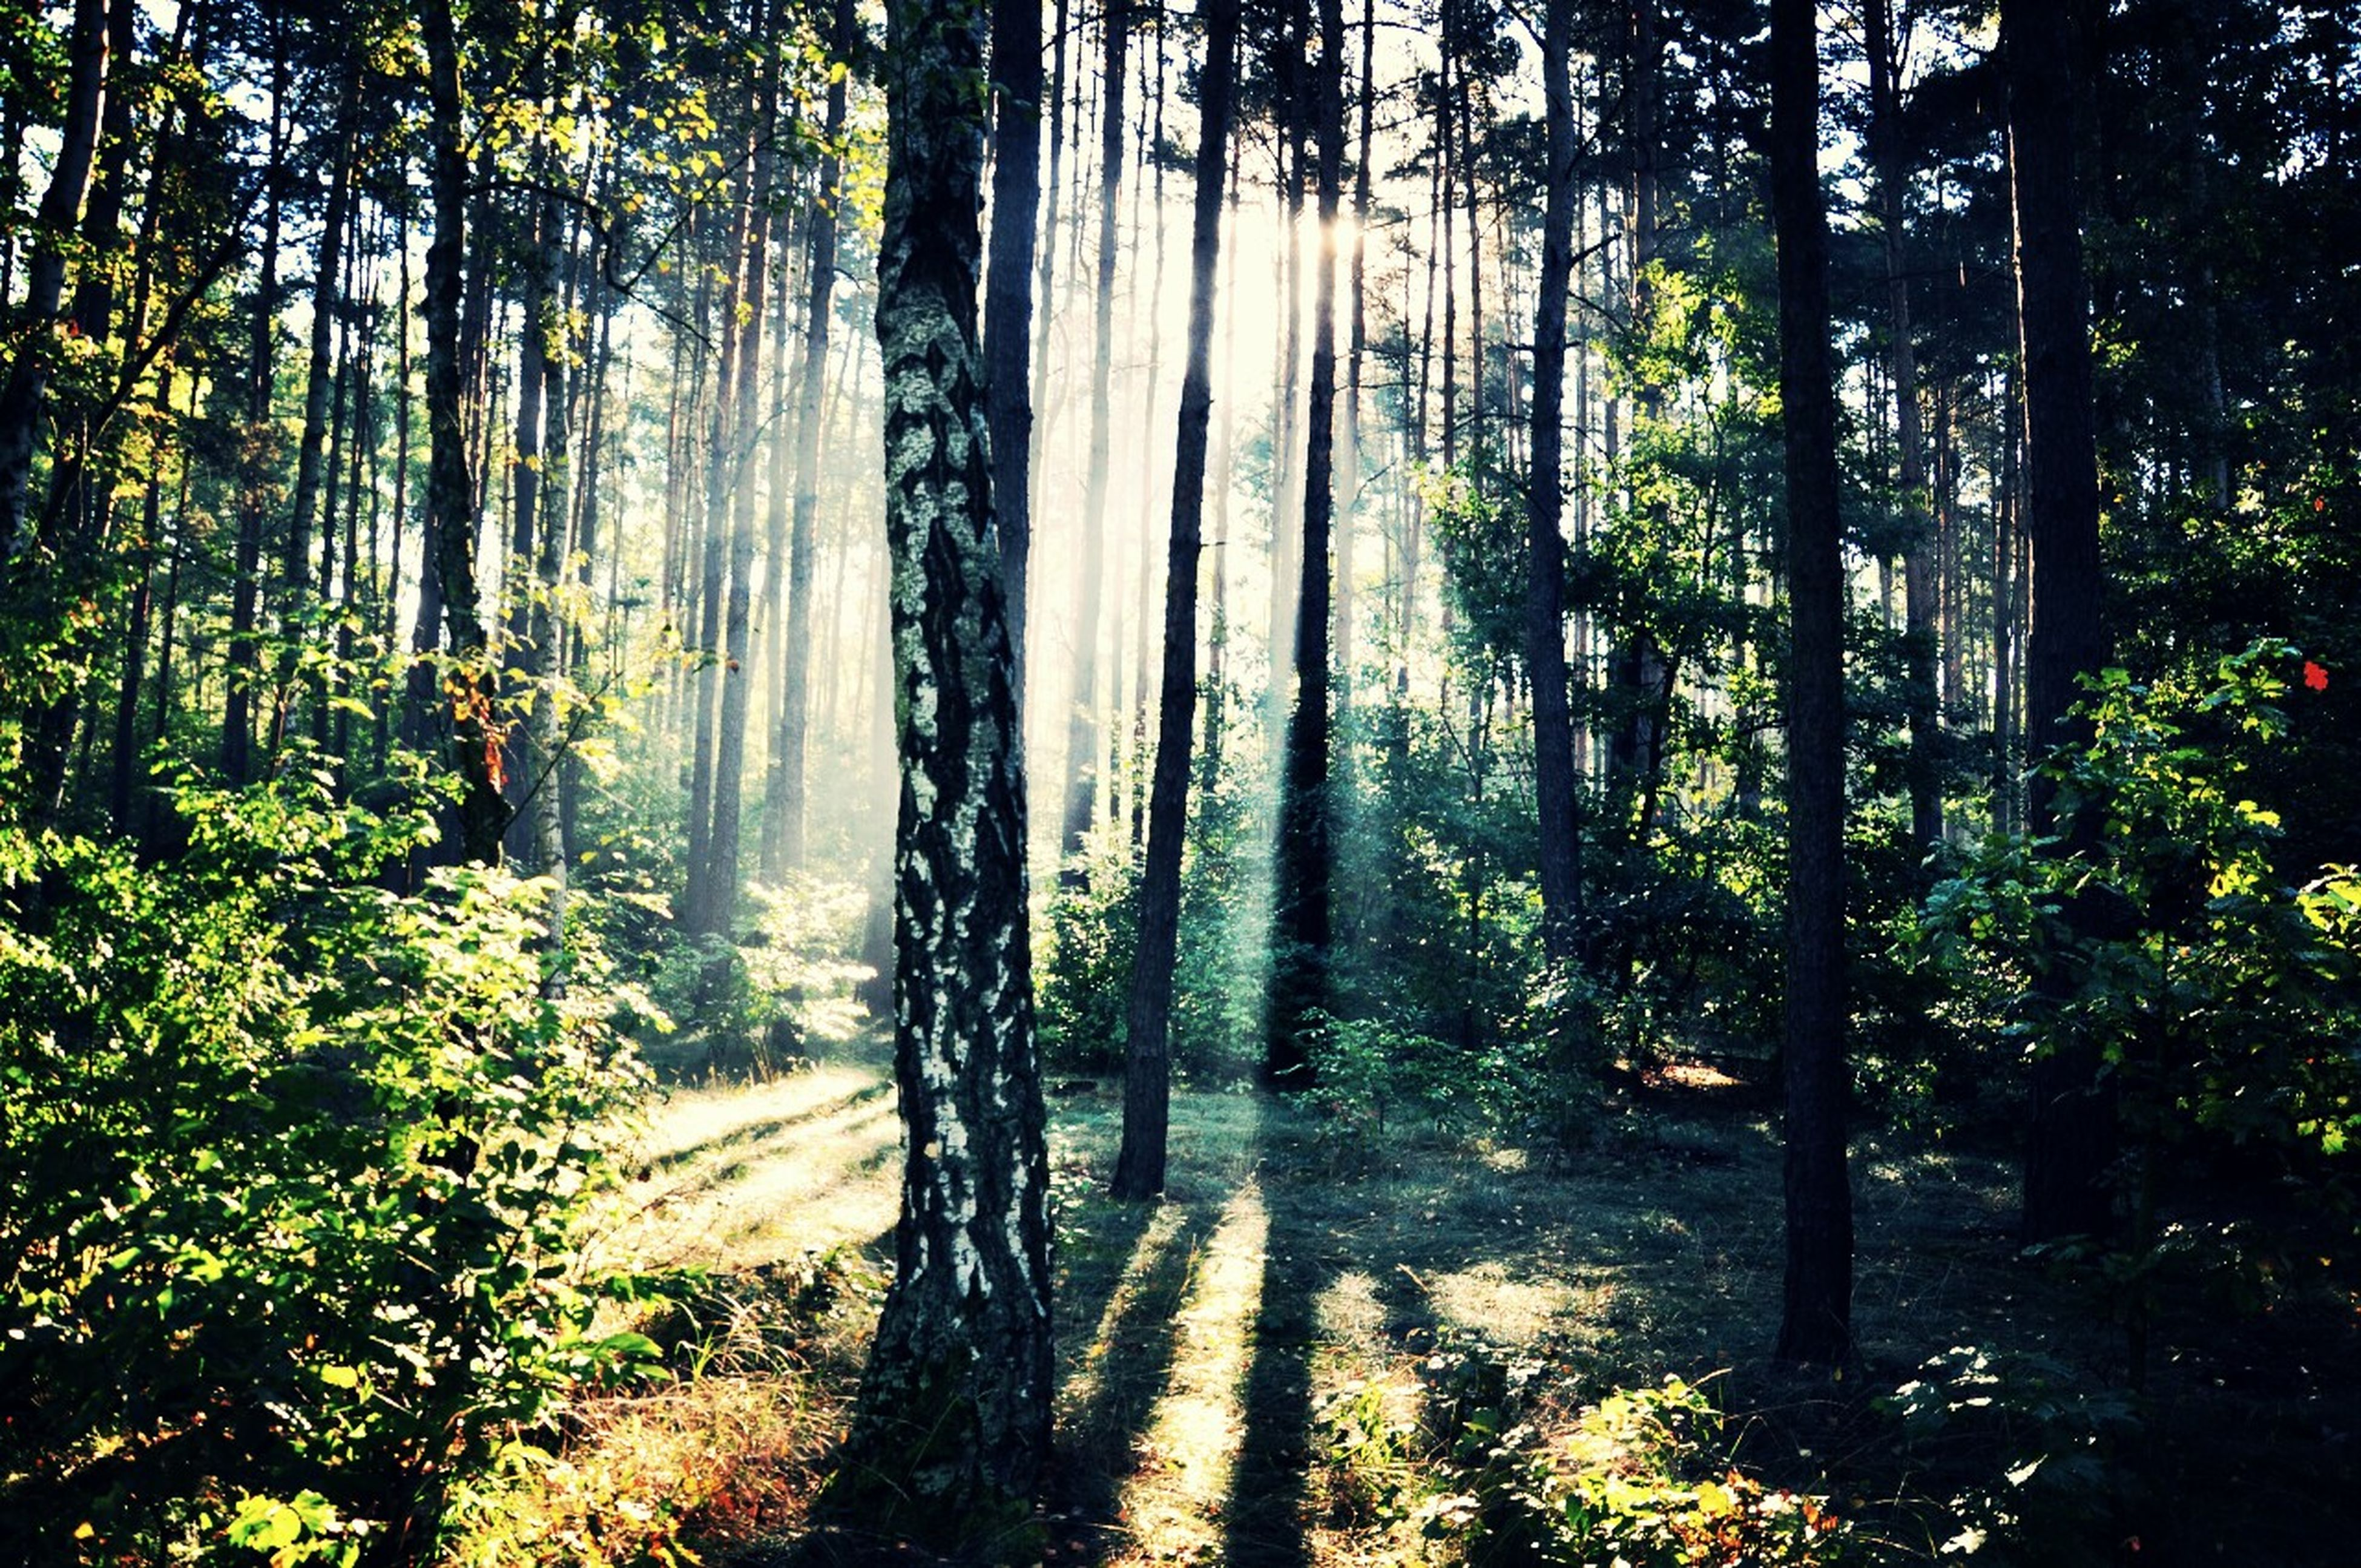 tree, forest, tranquility, tree trunk, tranquil scene, growth, woodland, nature, beauty in nature, scenics, sunlight, non-urban scene, branch, landscape, idyllic, shadow, sunbeam, day, outdoors, no people